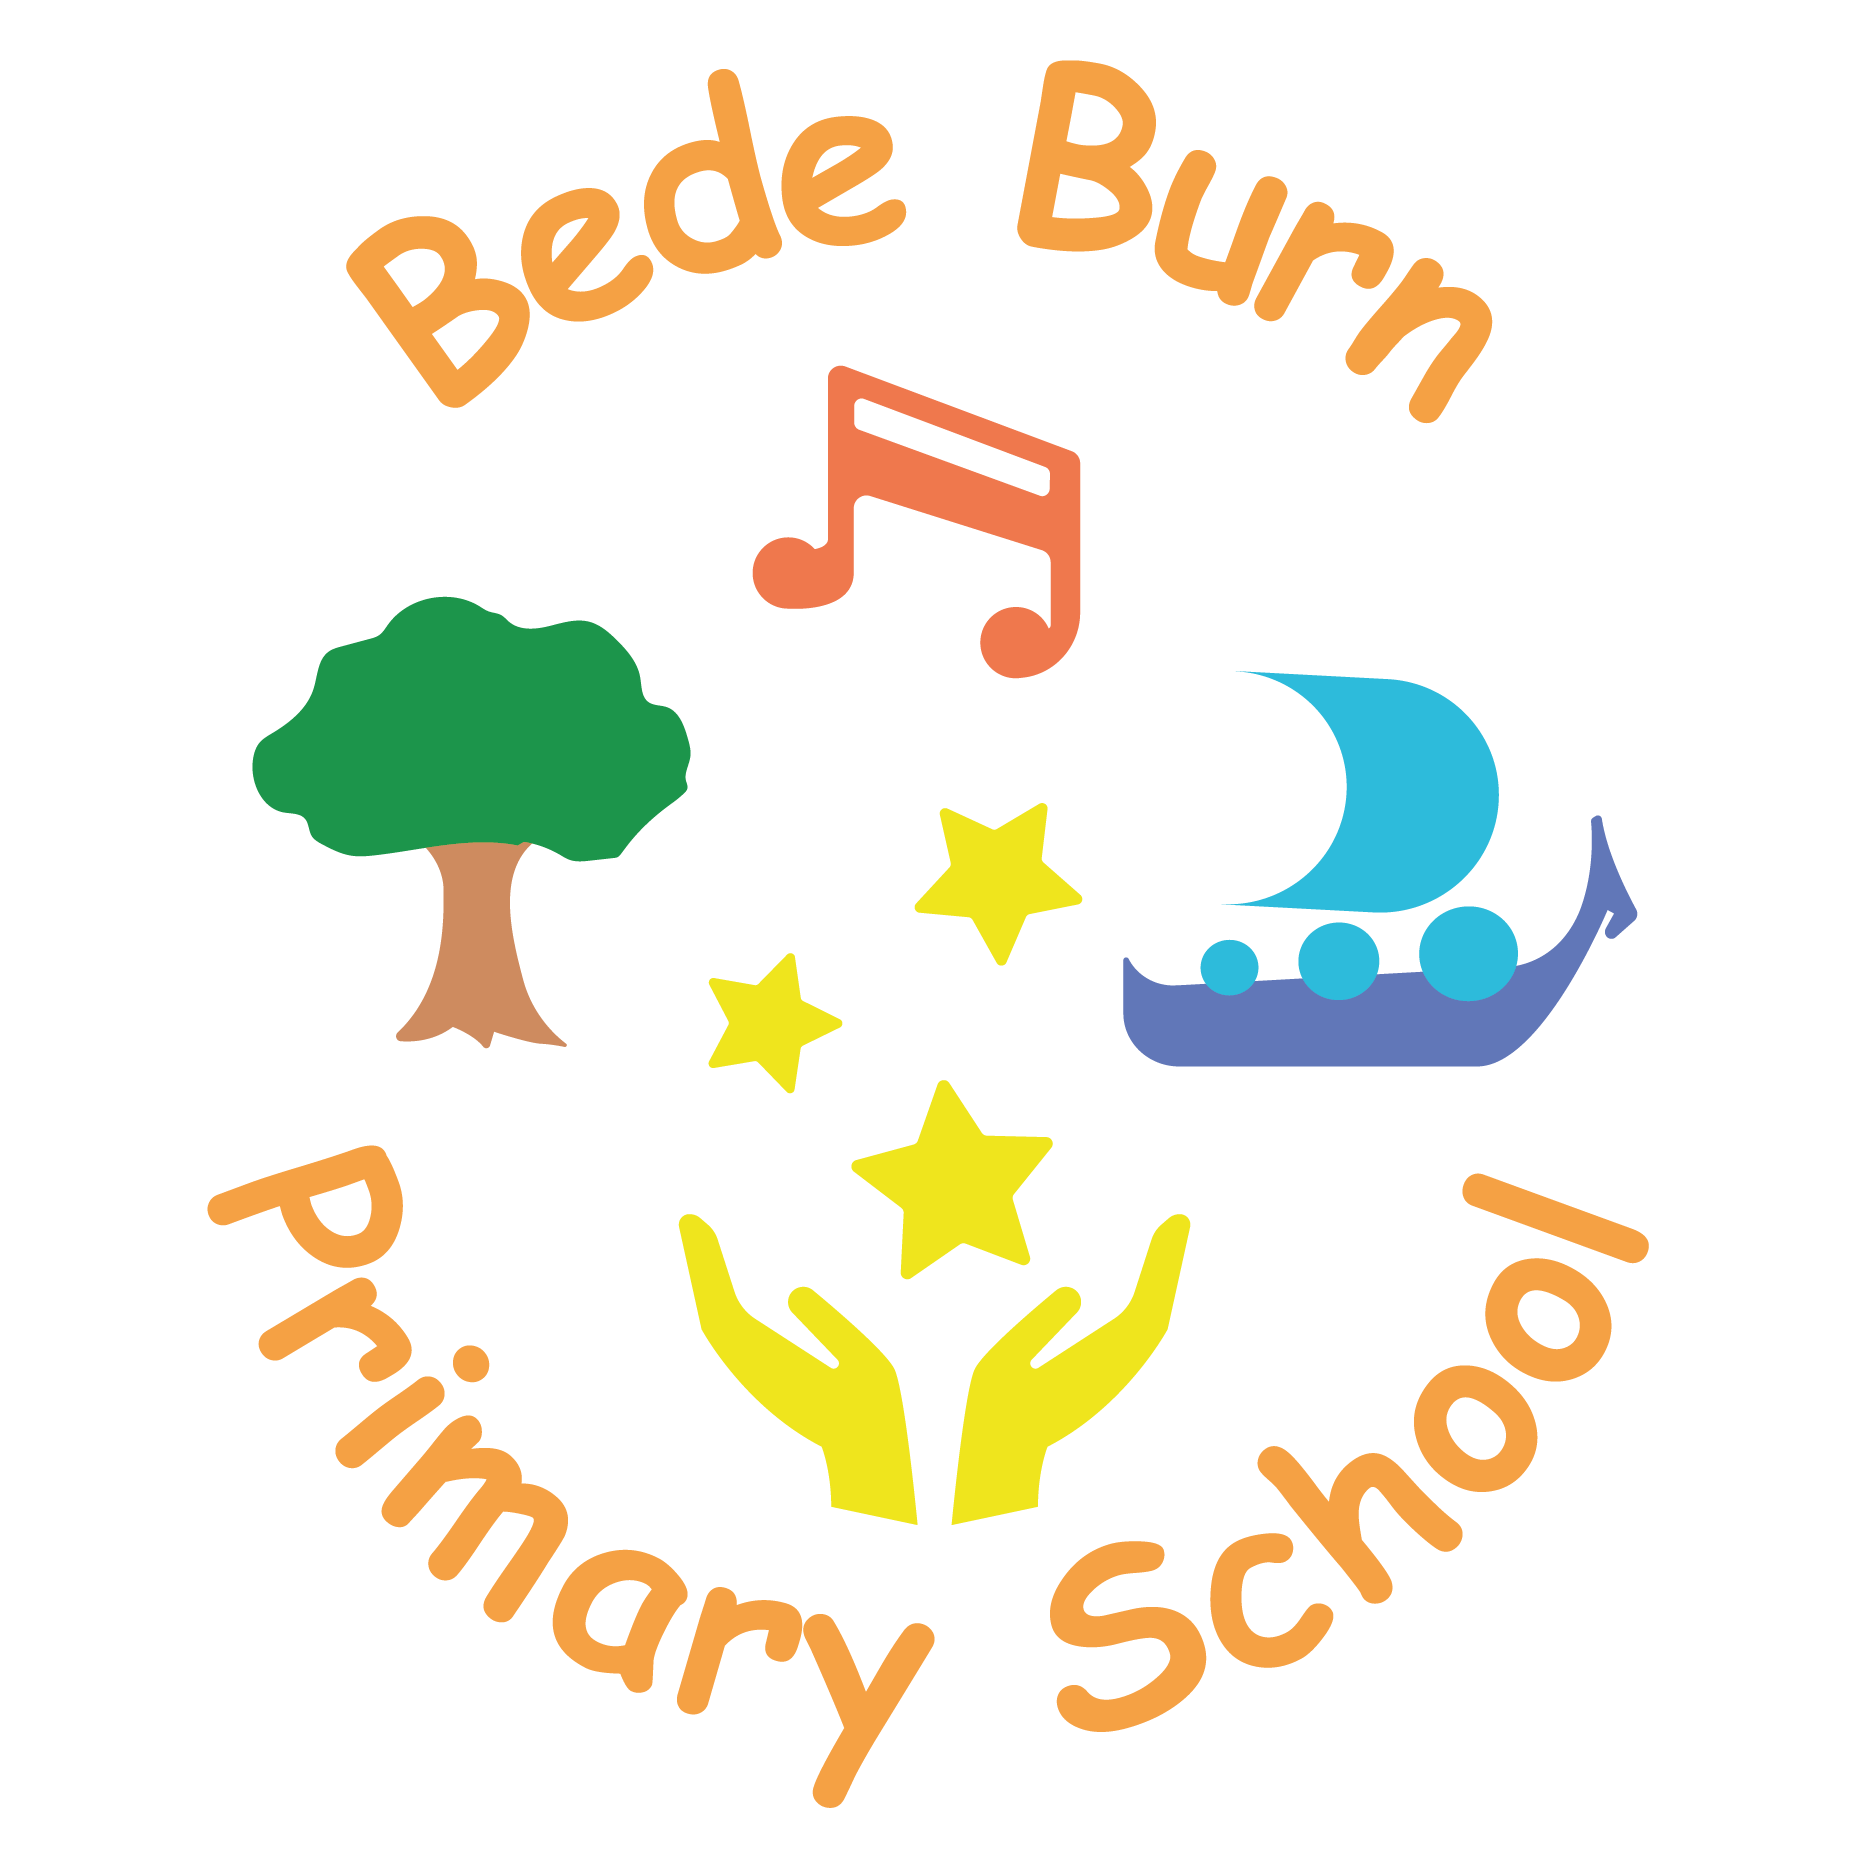 Bede Burn Primary School Logo